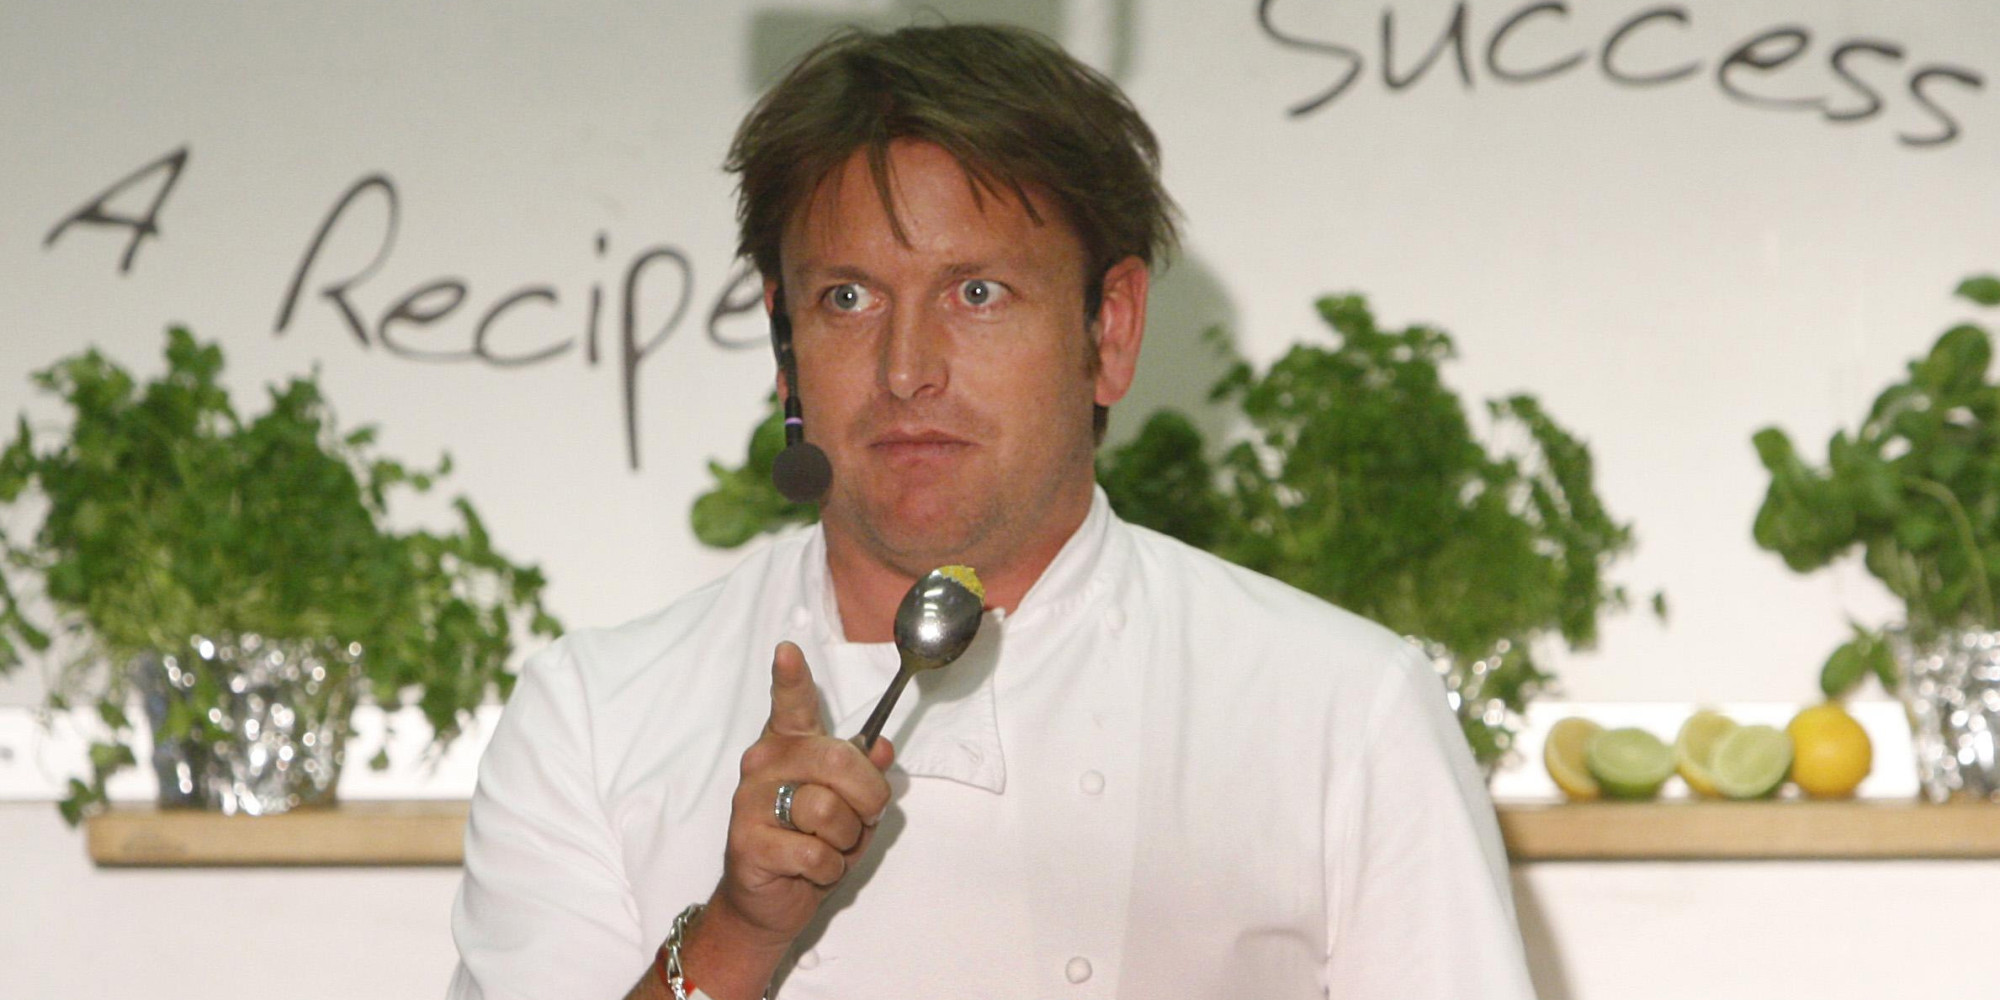 James Martin Company Saturday Kitchen 39s James Martin Claims He 39s Banned From